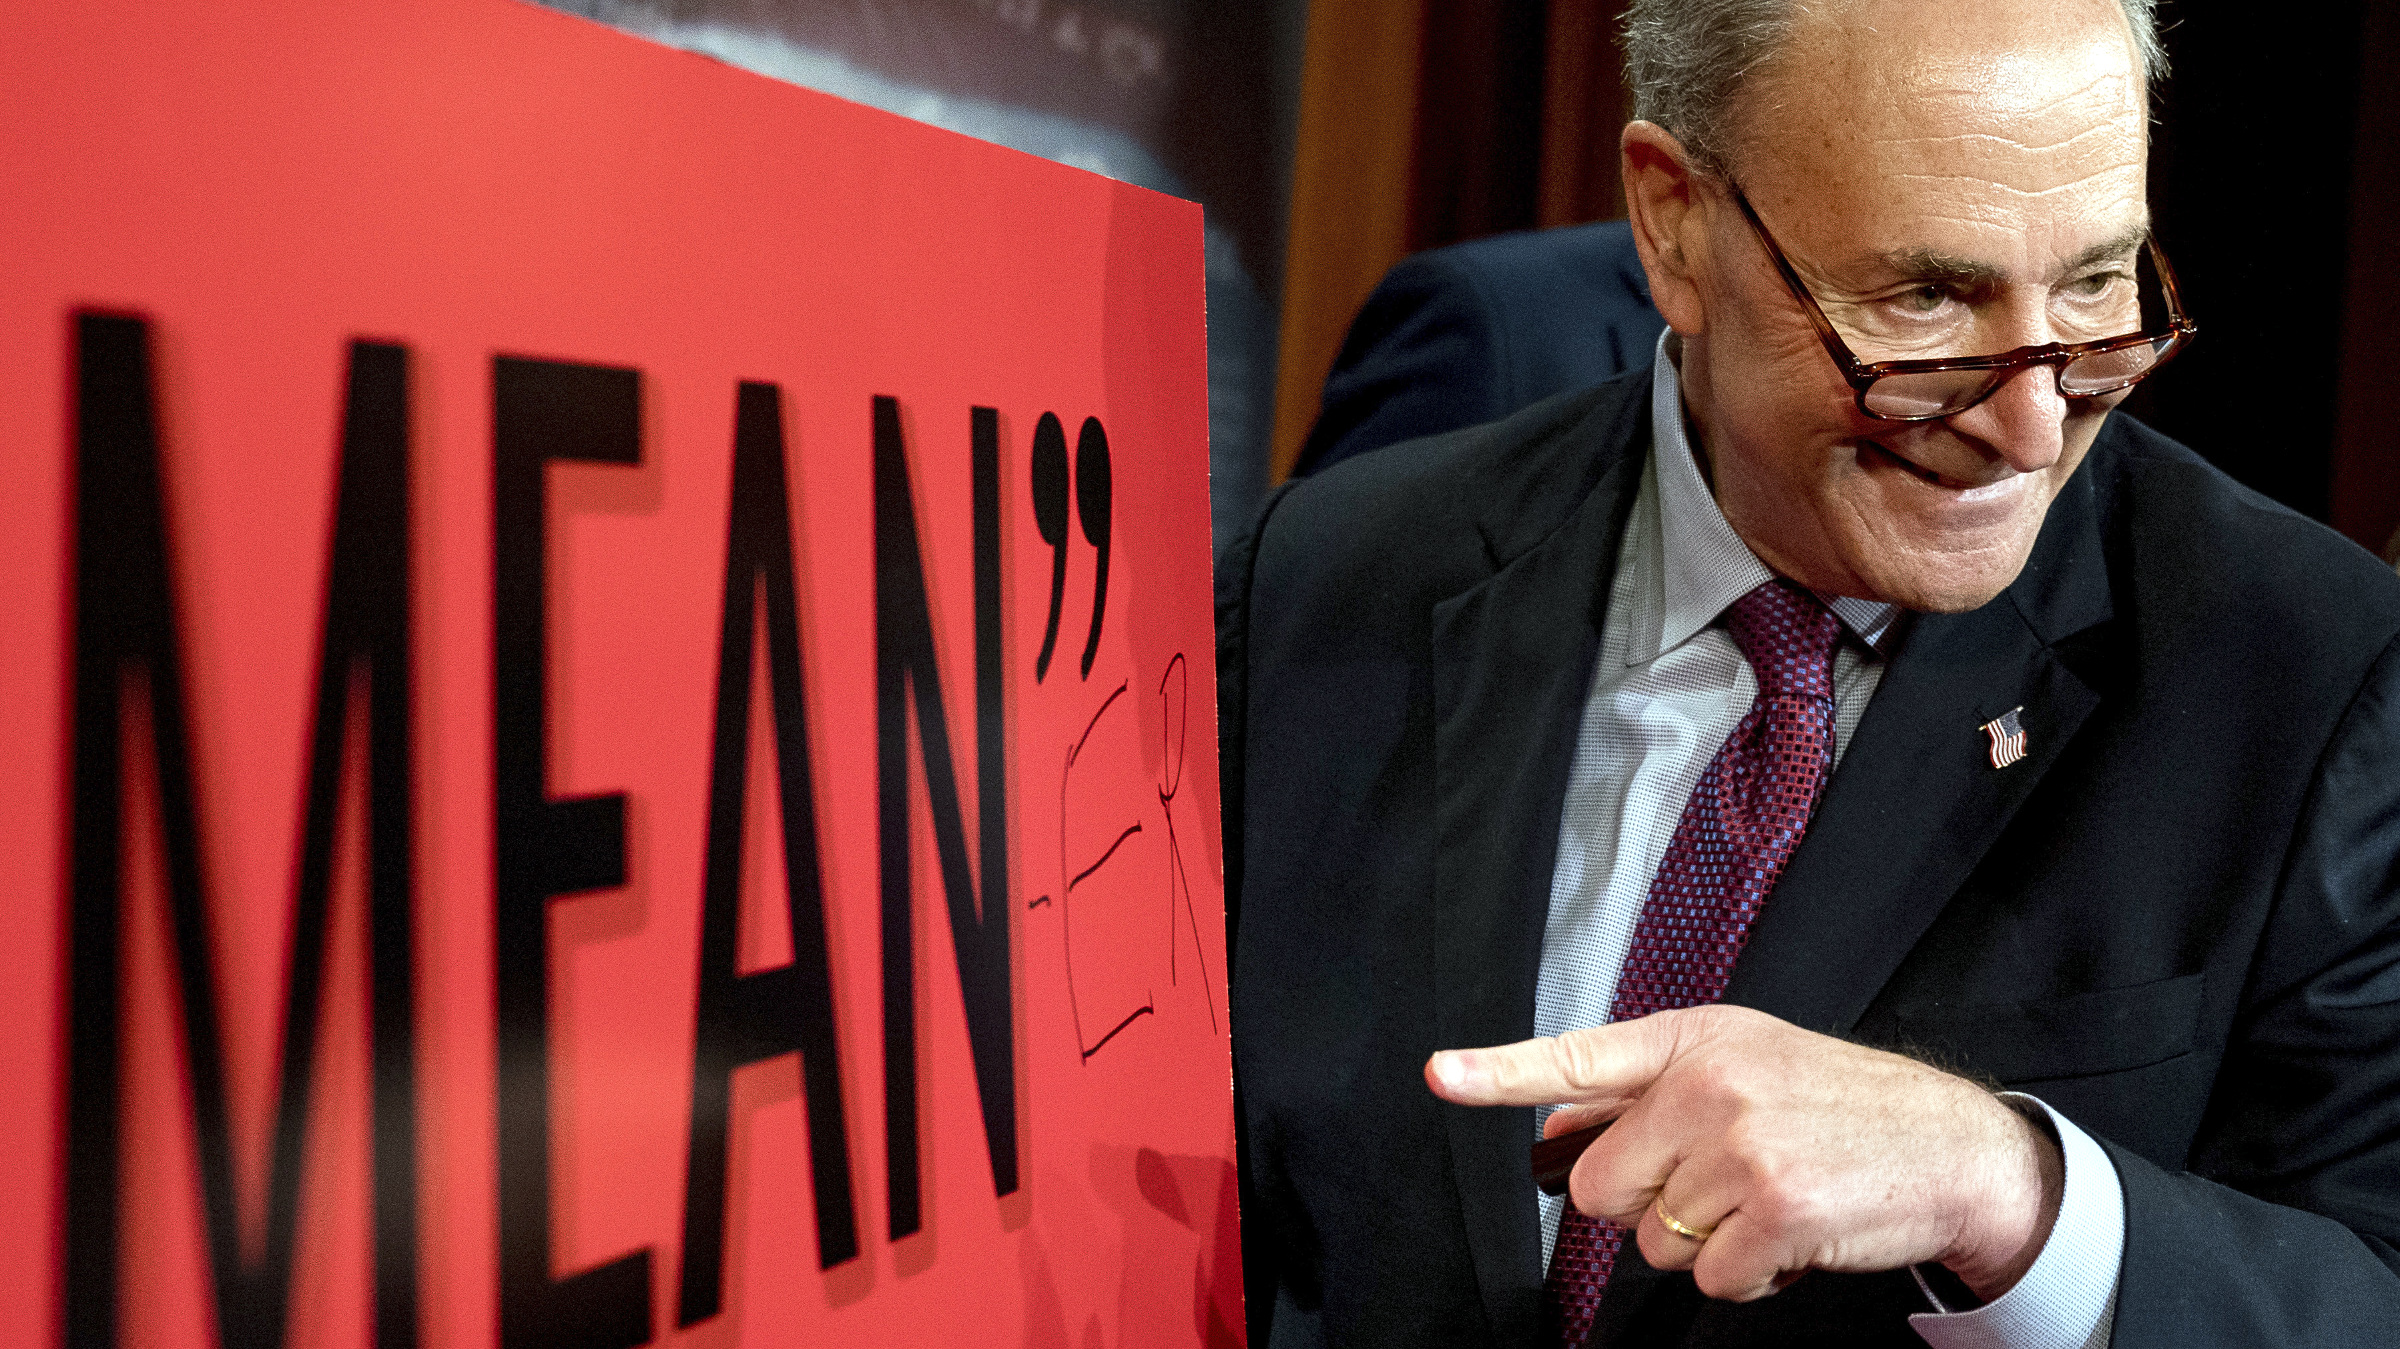 """Senate Minority Leader Chuck Schumer, D-N.Y., writes """"Mean-er"""" on a reported quote by President Donald Trump as Schumer responds to the release of the Republicans' healthcare bill which represents the long-awaited attempt to scuttle much of President Barack Obama's Affordable Care Act, at the Capitol in Washington, Thursday, June 22, 2017."""